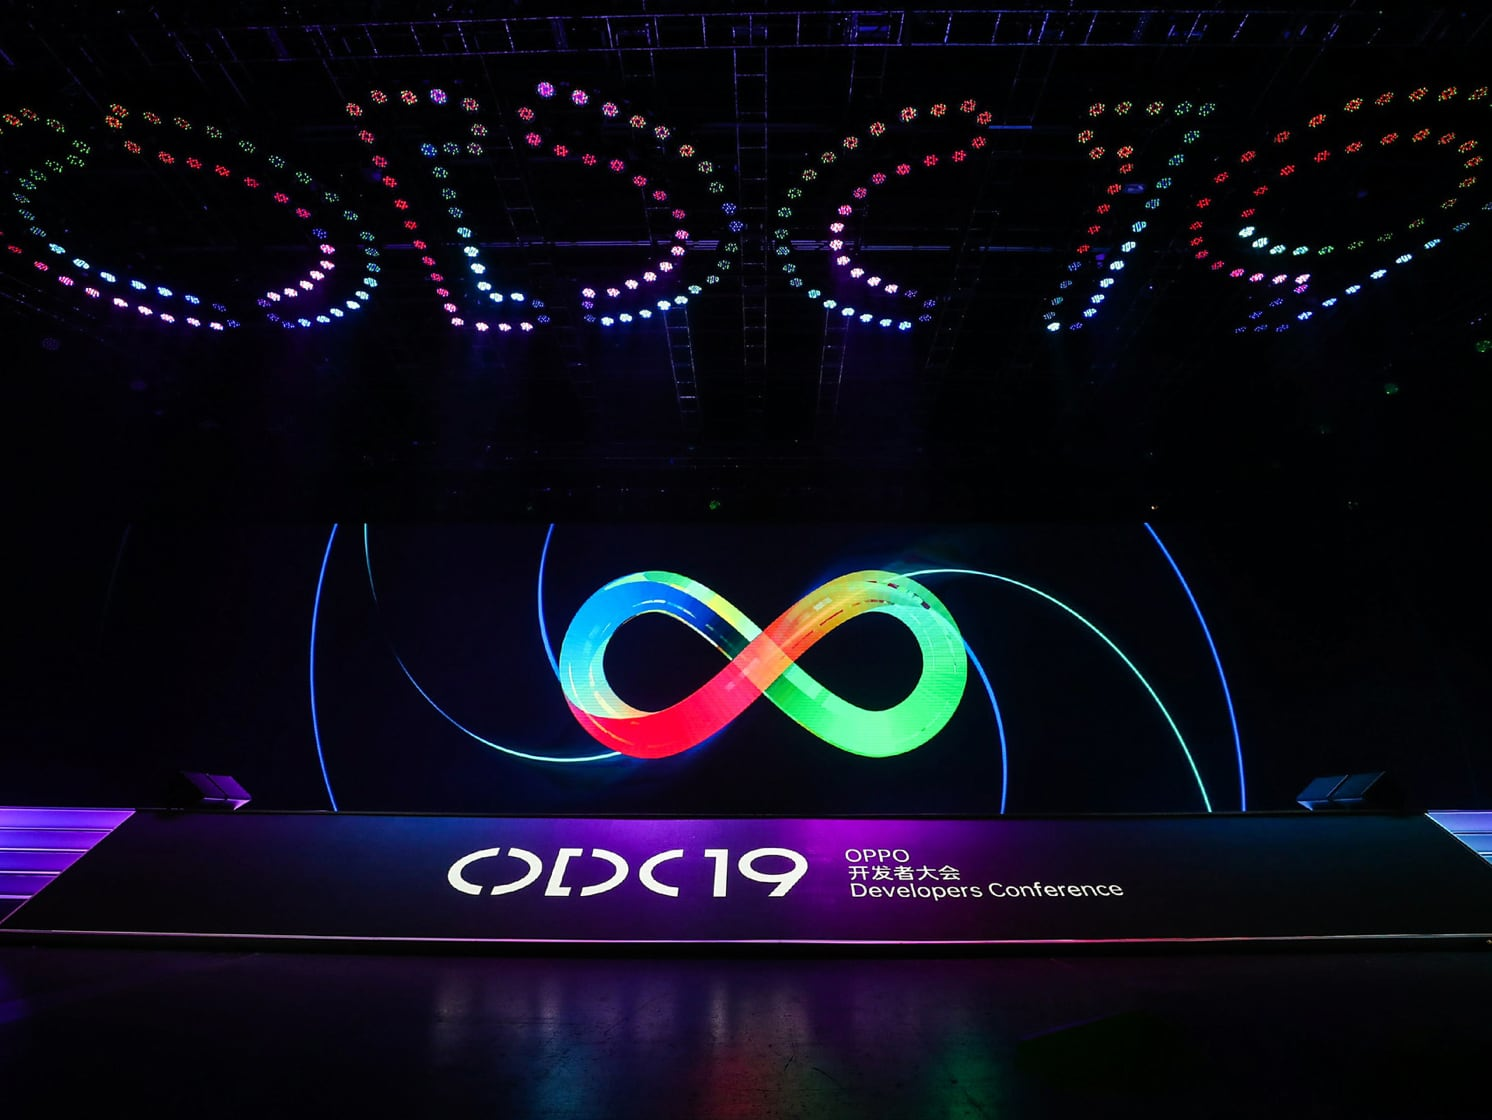 OPPO announced three initiatives to co-build a new intelligent service ecosystem with developers